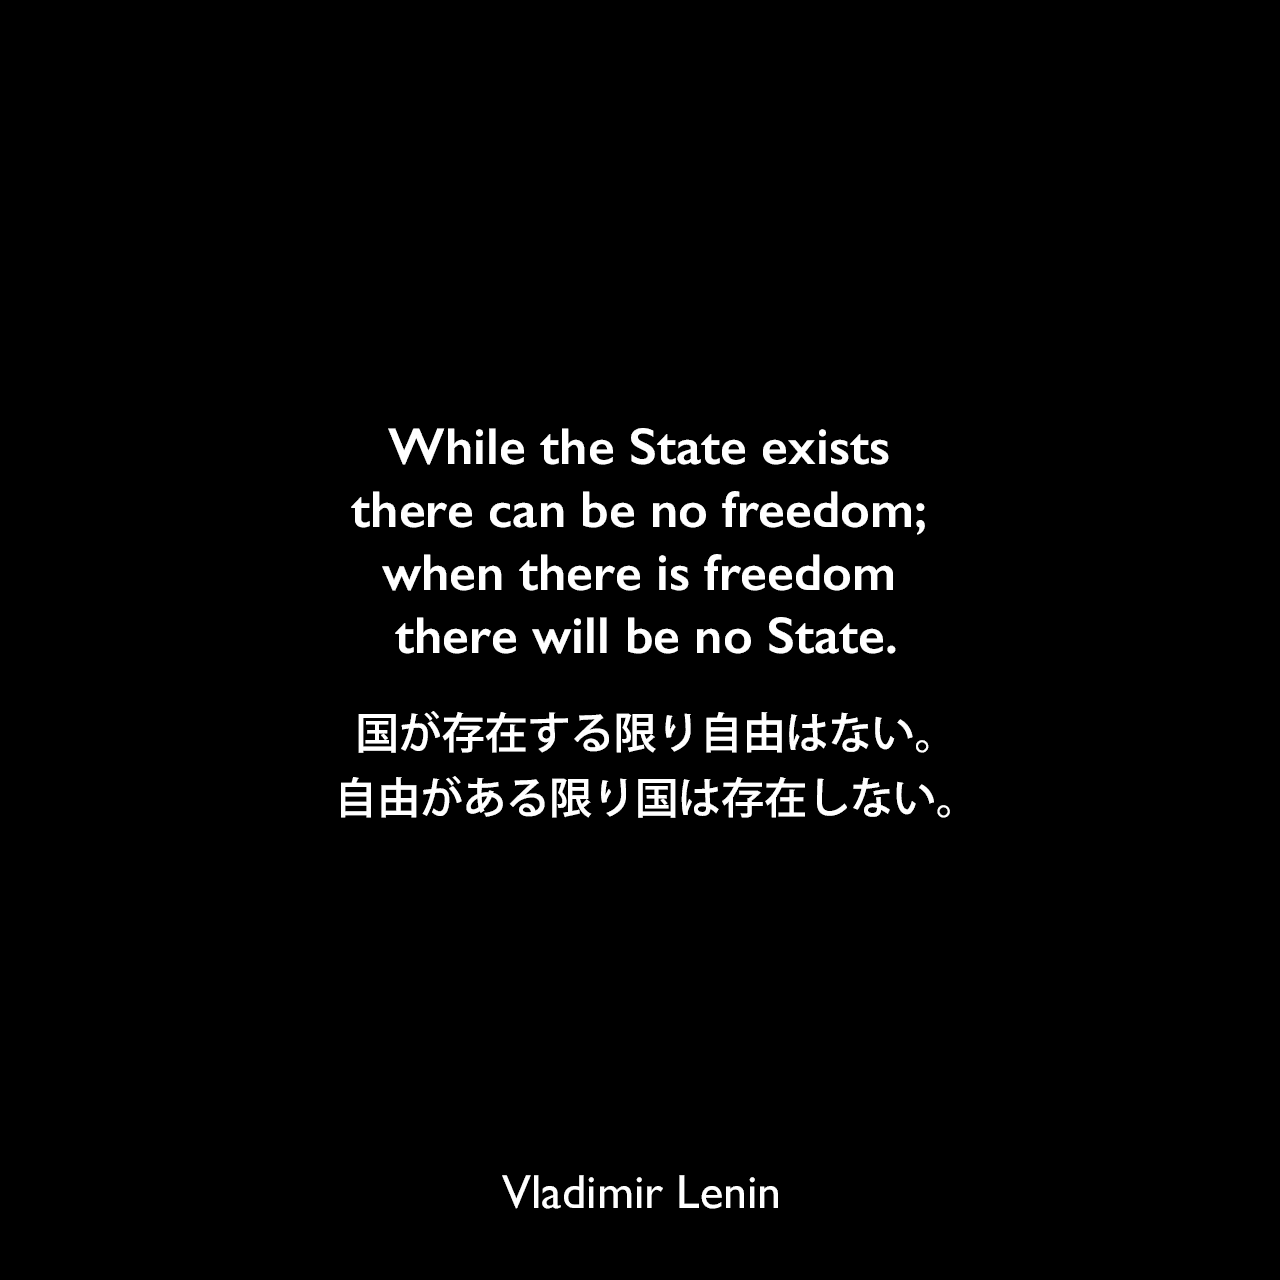 While the State exists there can be no freedom; when there is freedom there will be no State.国が存在する限り自由はない。自由がある限り国は存在しない。- レーニンの著書「国家と革命」よりVladimir Lenin